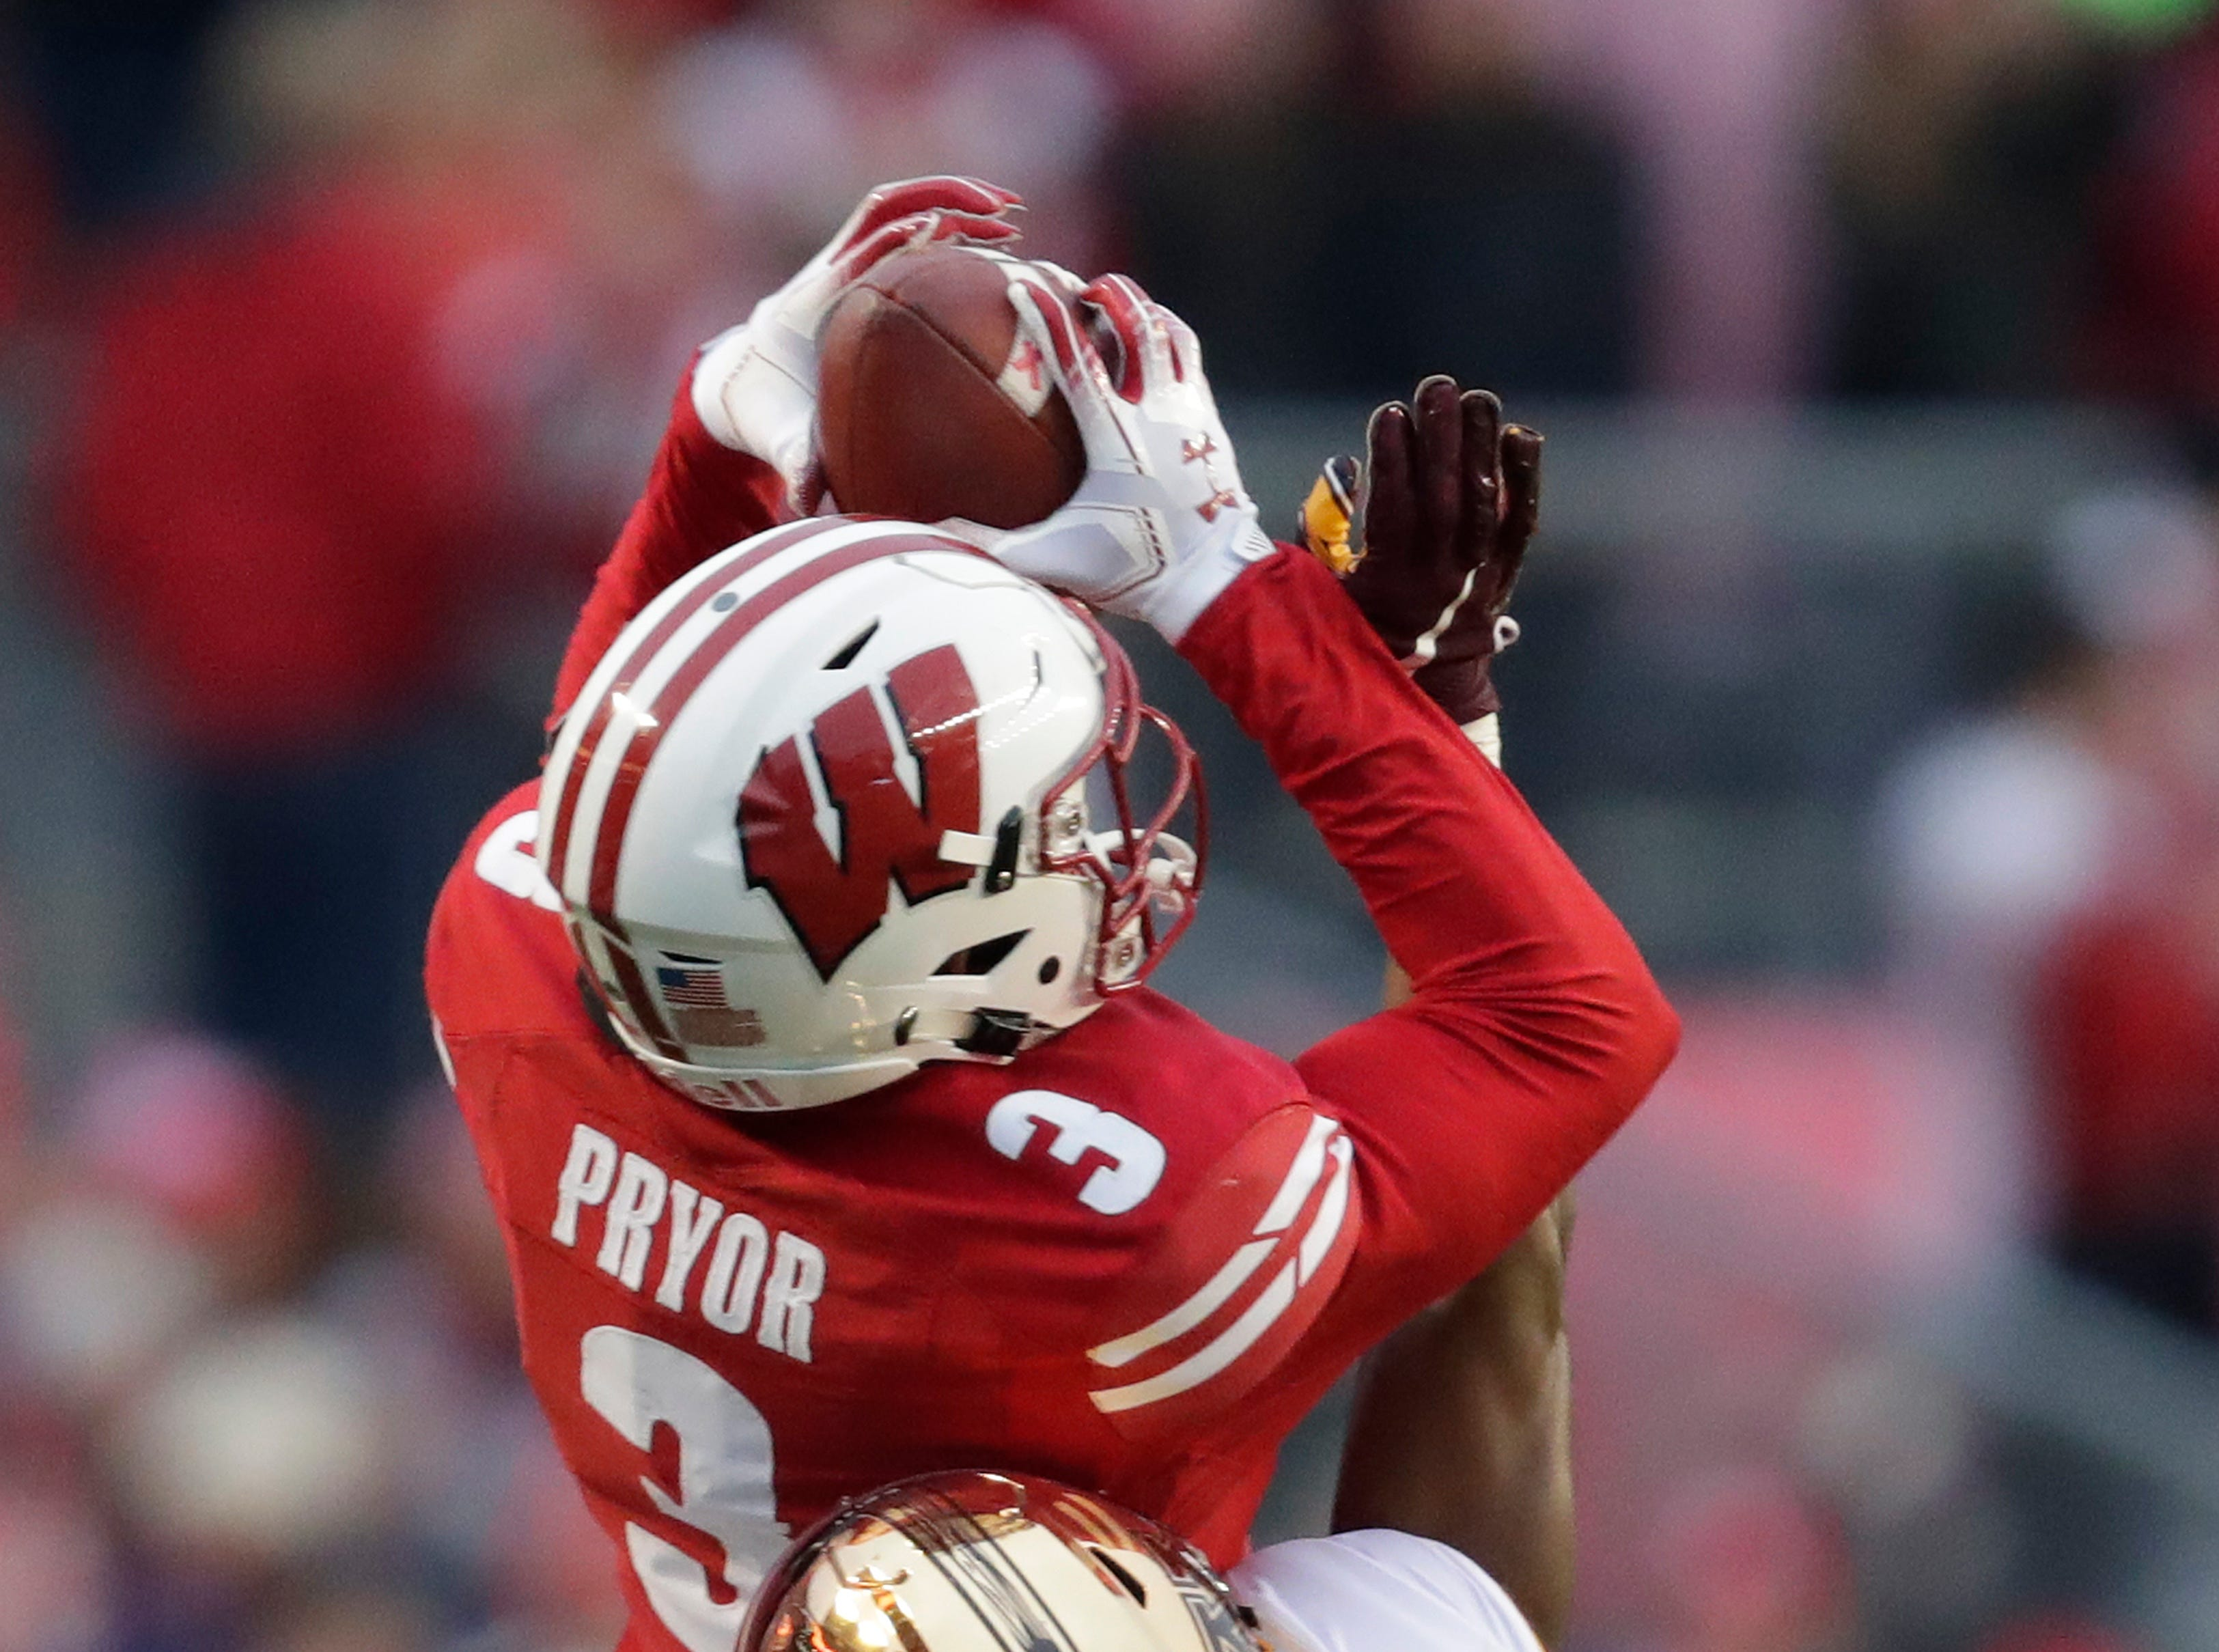 Wisconsin wide receiver Kendric Pryor (3) pulls down a long reception against Minnesota defensive back Kiondre Thomas (31) at the end of the first quarter Saturday, November 24, 2018, at Camp Randall Stadium in Madison, Wis. Dan Powers/USA TODAY NETWORK-Wisconsin